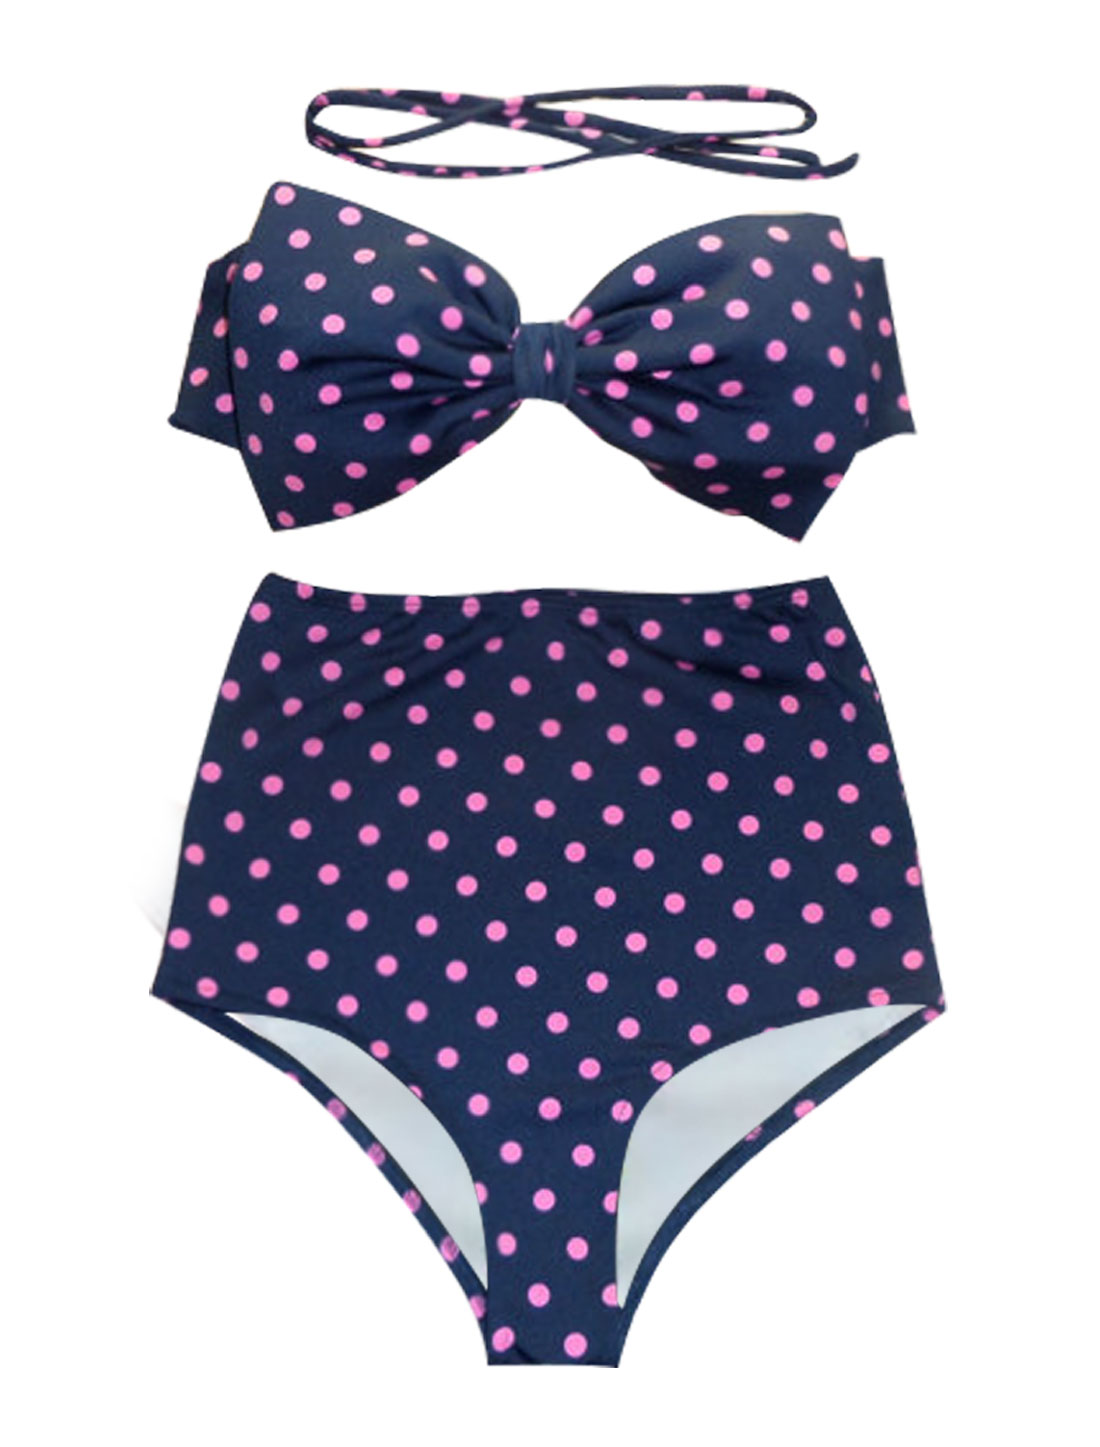 Women Vintage Push-up Padded Bikini Dots High Waist Top Bow Bathing Suit M Navy